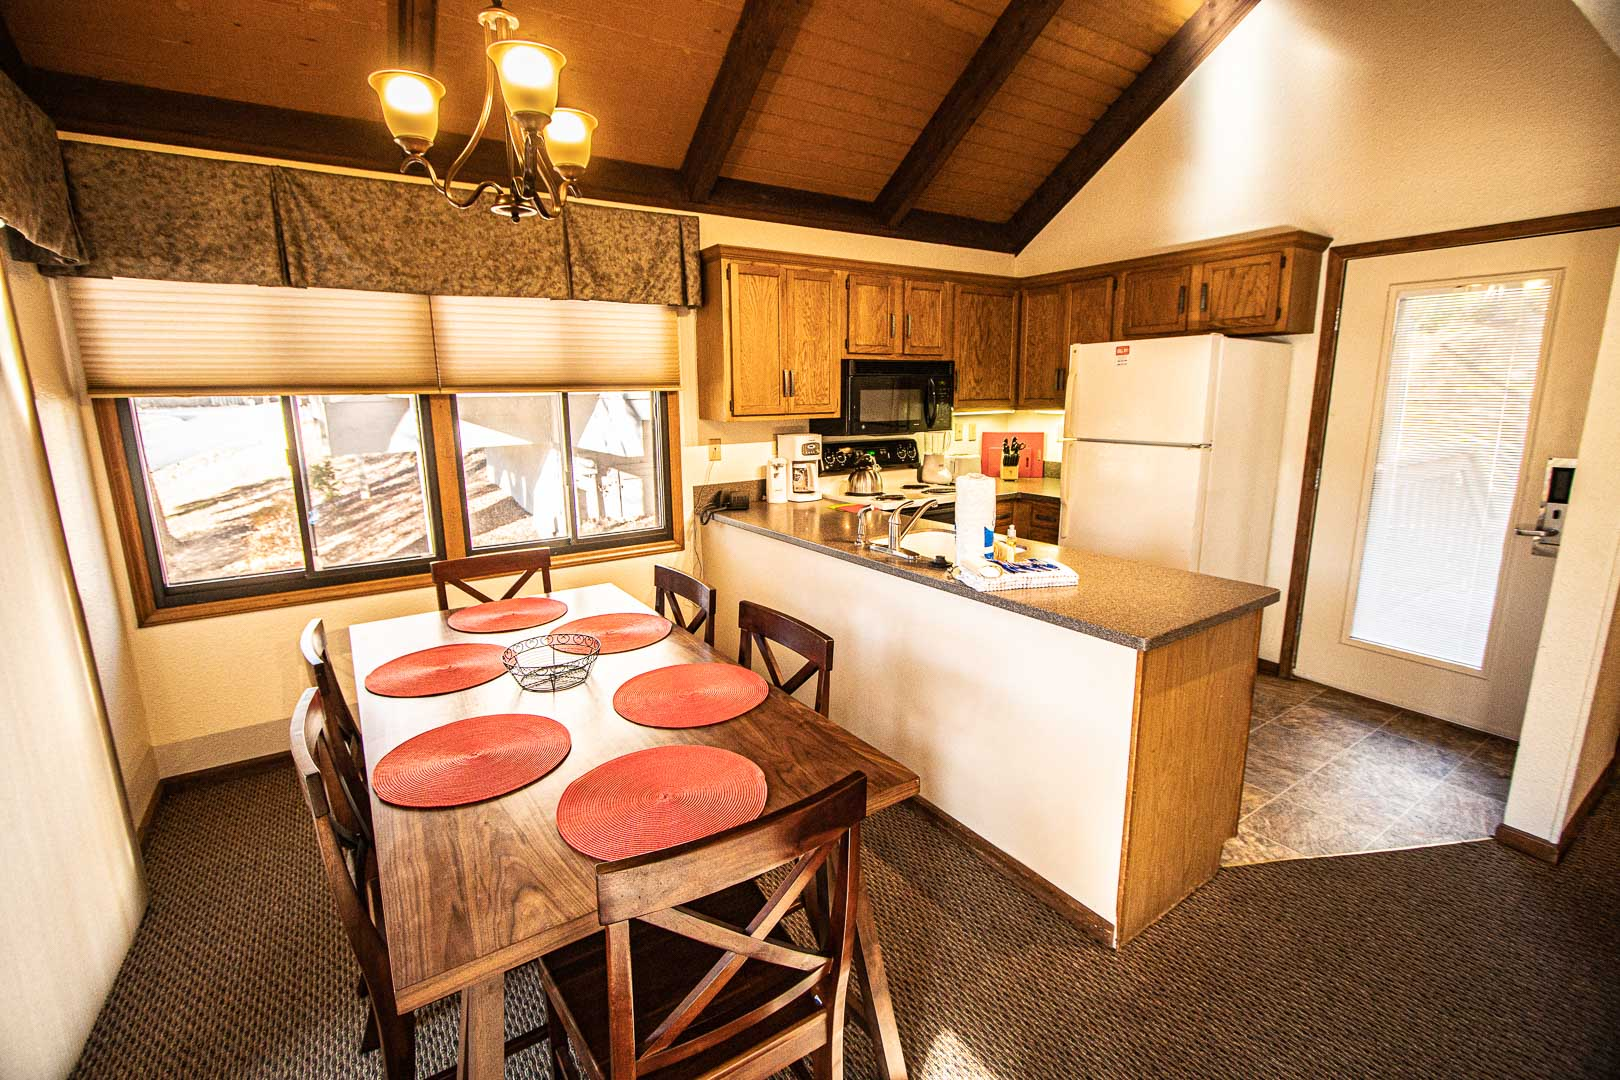 A spacious dining and kitchen area at VRI's Mountain Loft Resort in North Carolina.